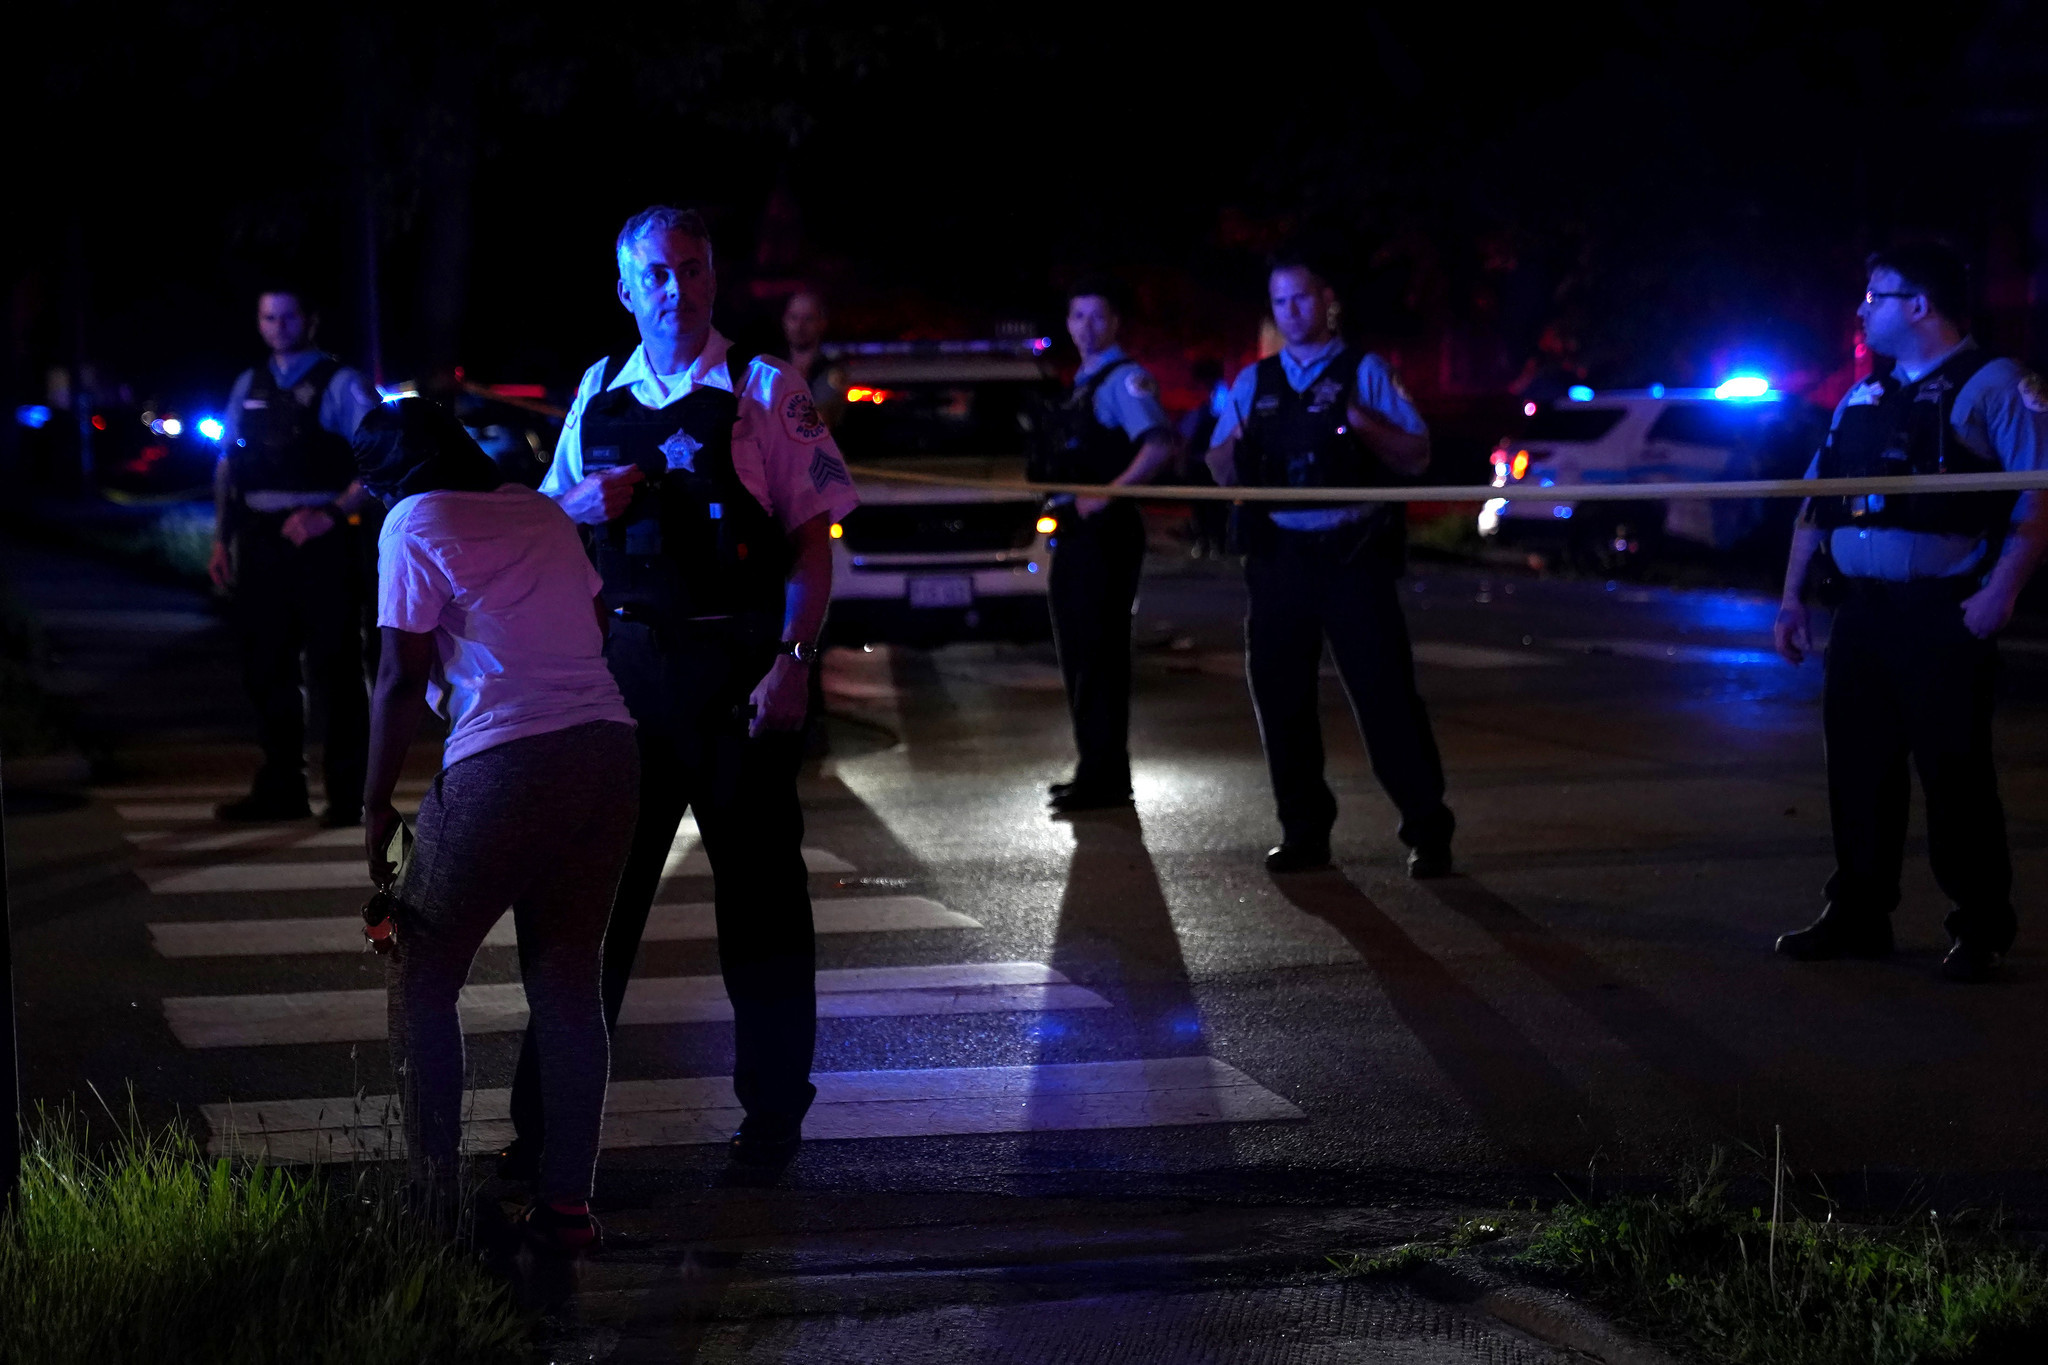 25 shot, 5 fatally, so far in Chicago during Memorial Day weekend